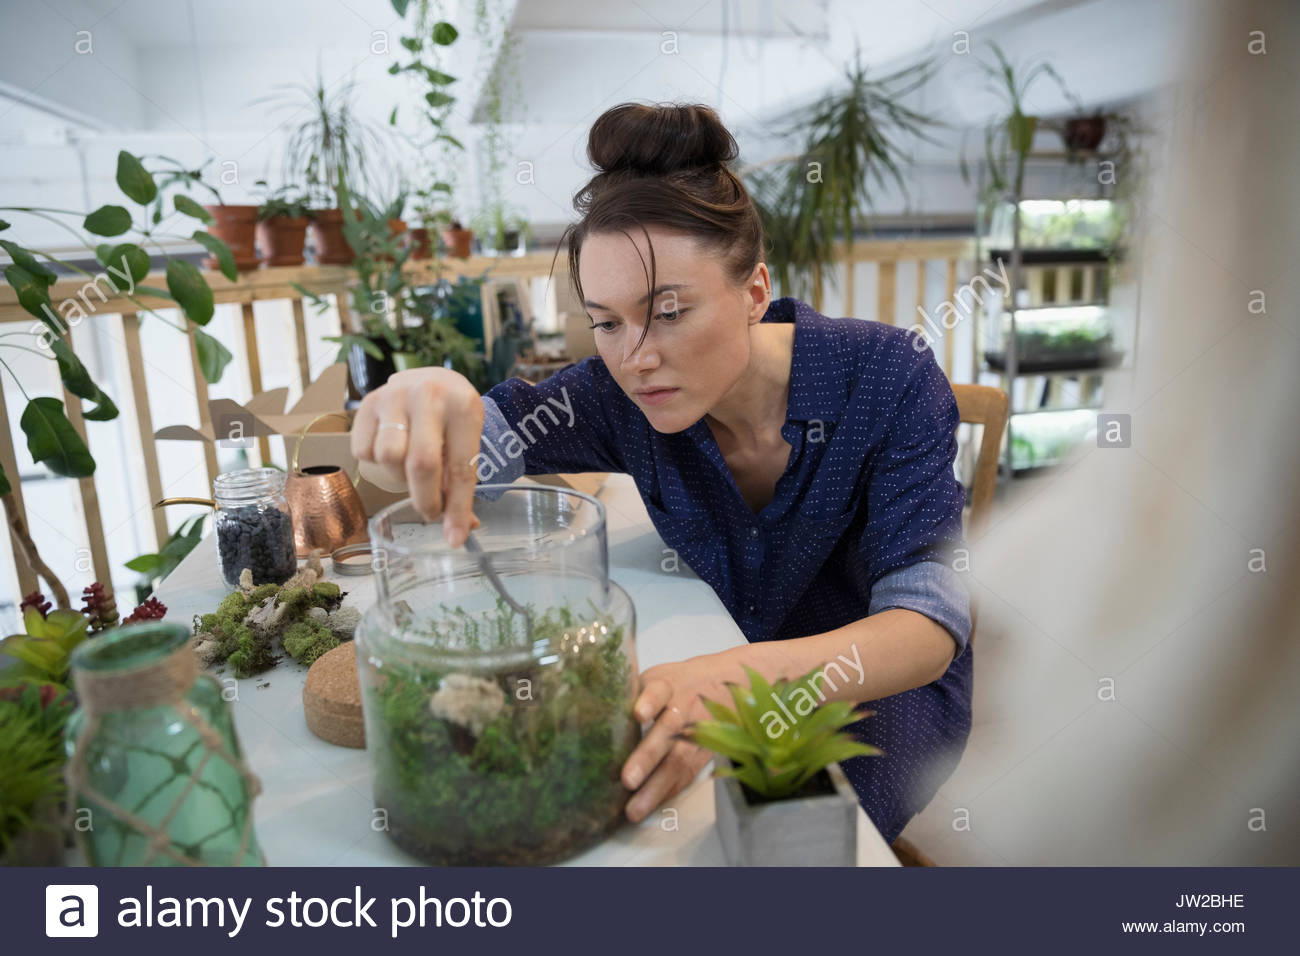 Focused female shop owner making succulent plant terrariums at workbench - Stock Image